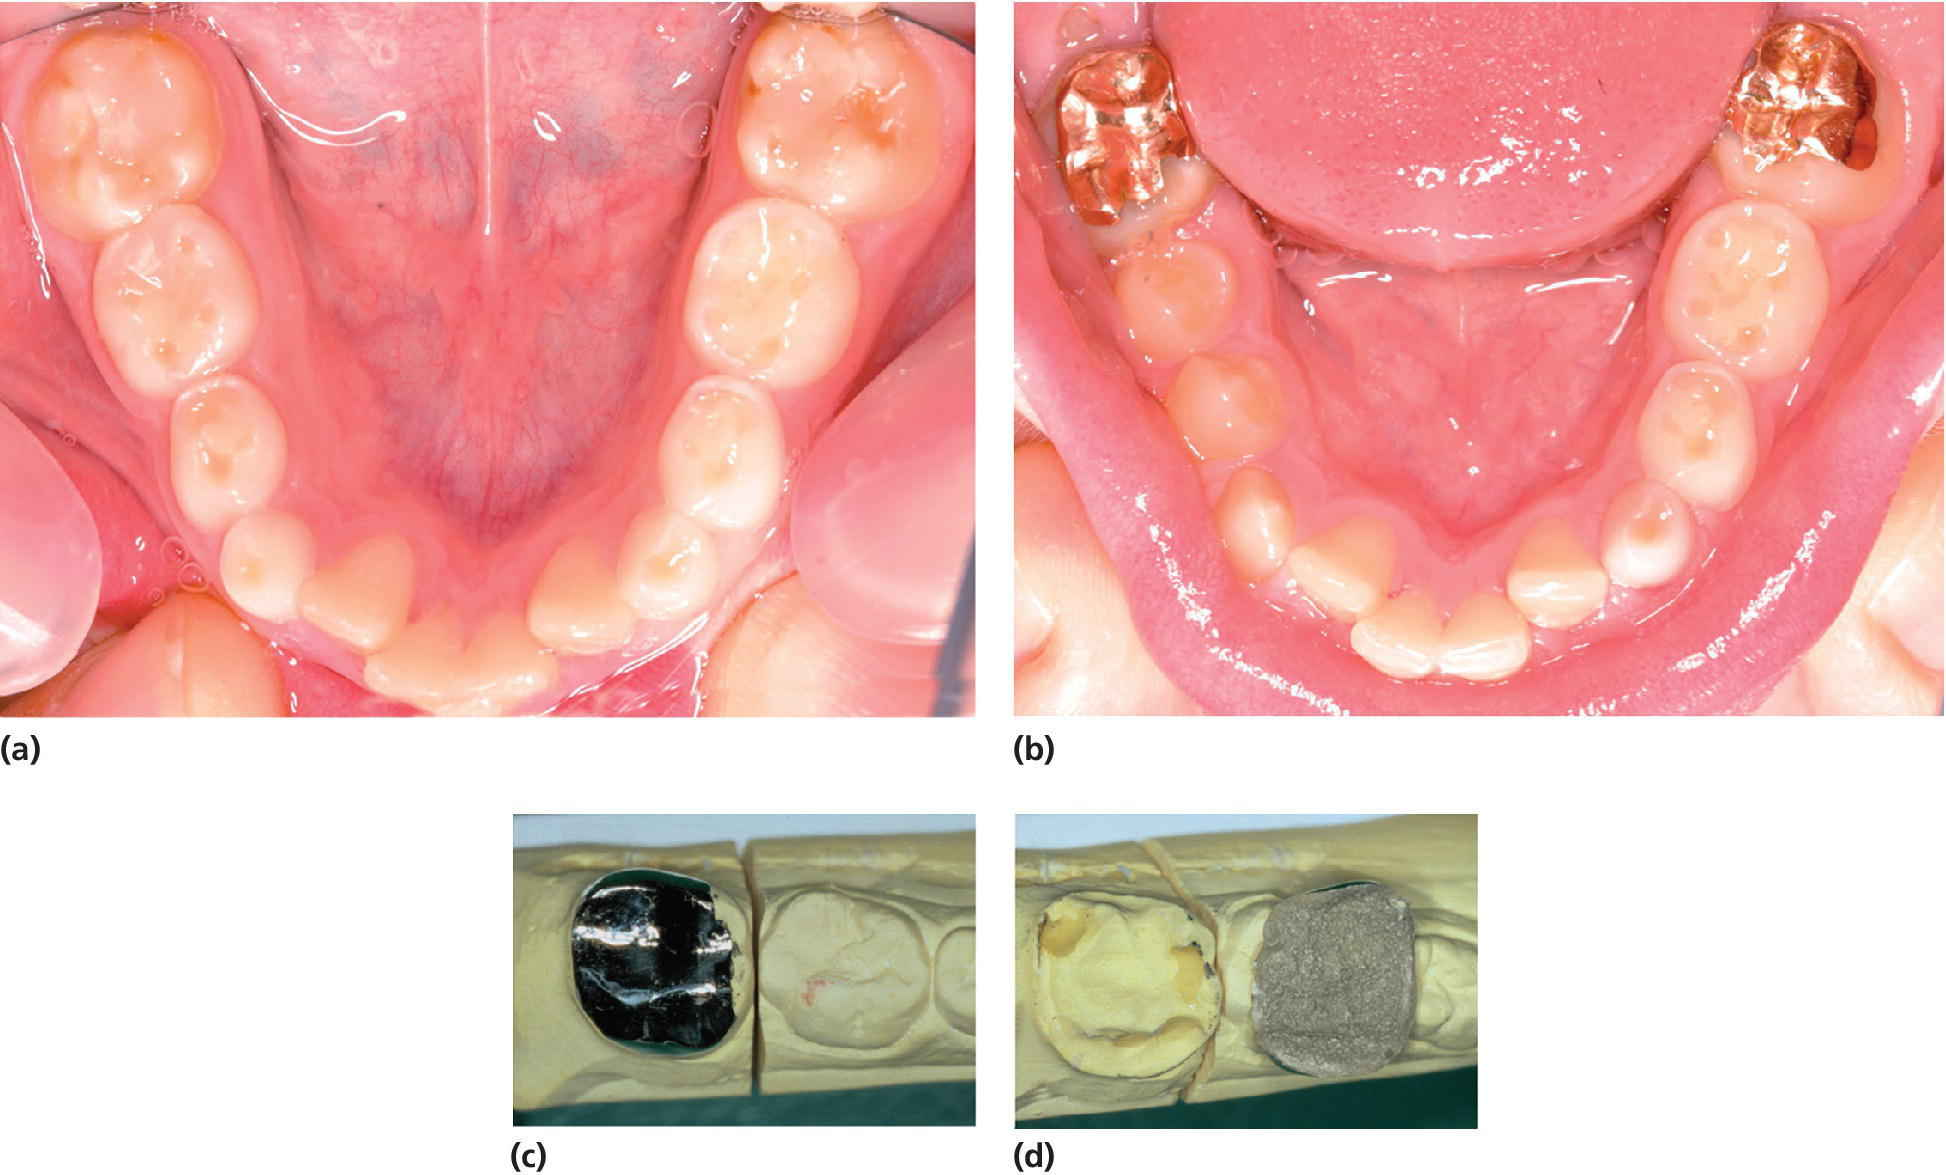 4 Photos displaying dentition with hypomineralized permanent first molars with opacities, posteruptive enamel breakdown along the margins of composite fillings and treatment with cast‐gold copings.